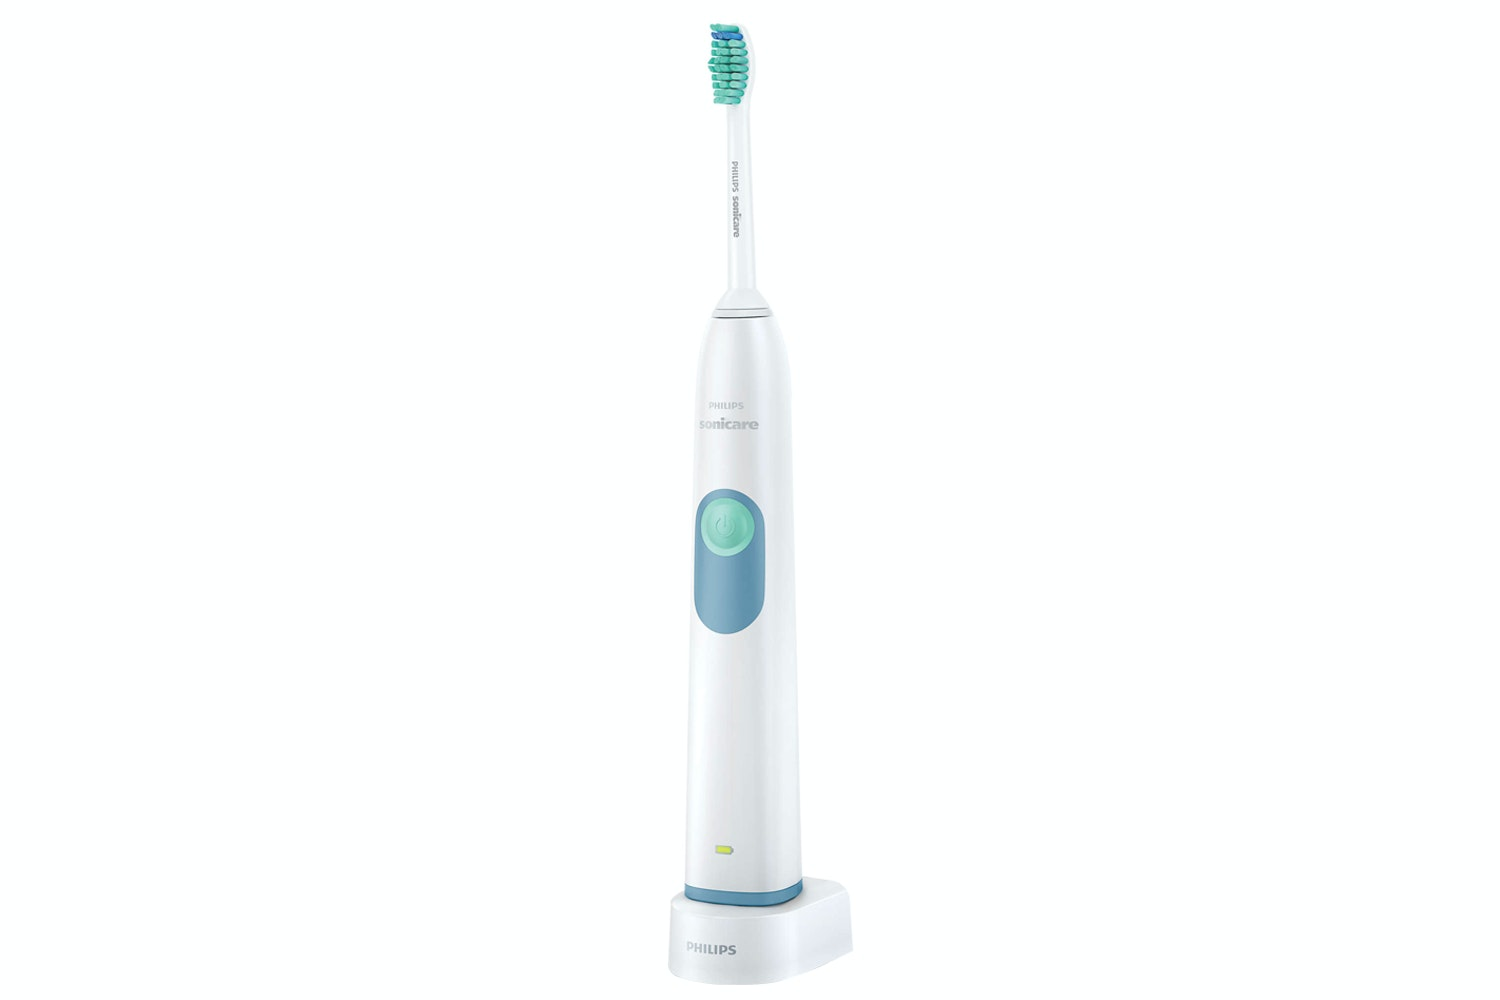 Philips Sonicare 2 Series Electric Toothbrush | HX6251/40